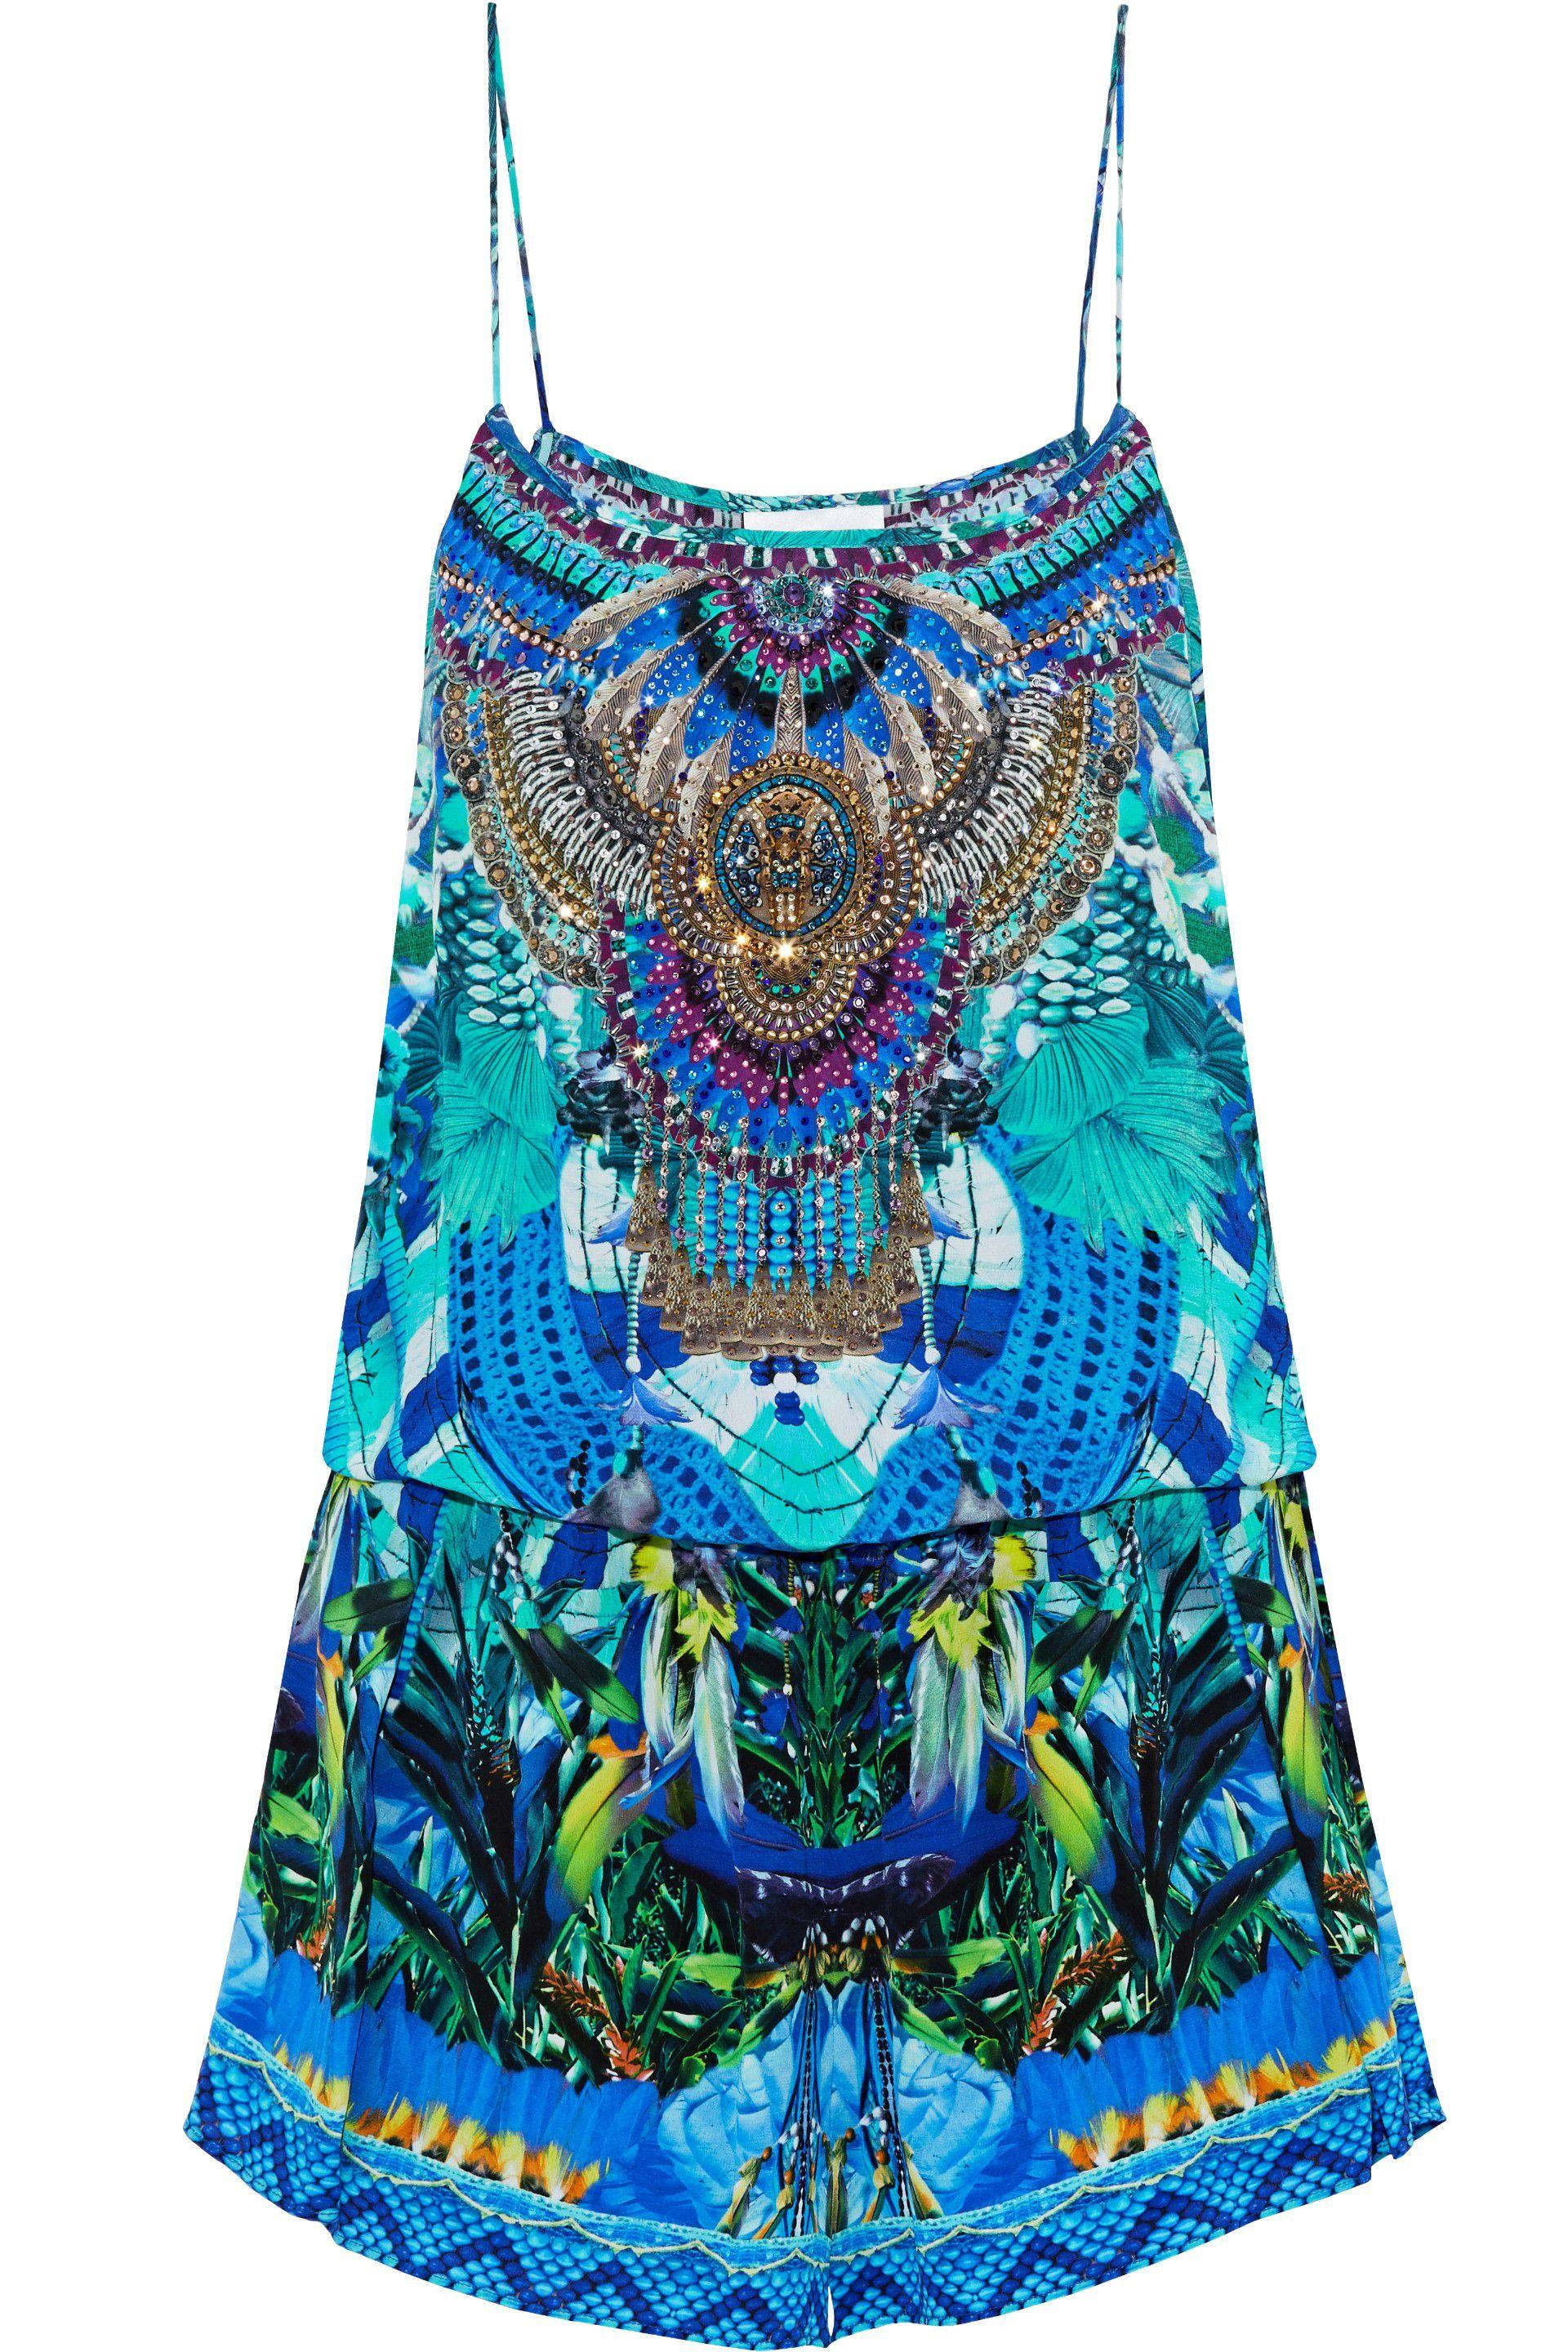 09203aacad3 Camilla. Women s Blue Woman Masking Madness Embellished Printed Silk  Playsuit Turquoise